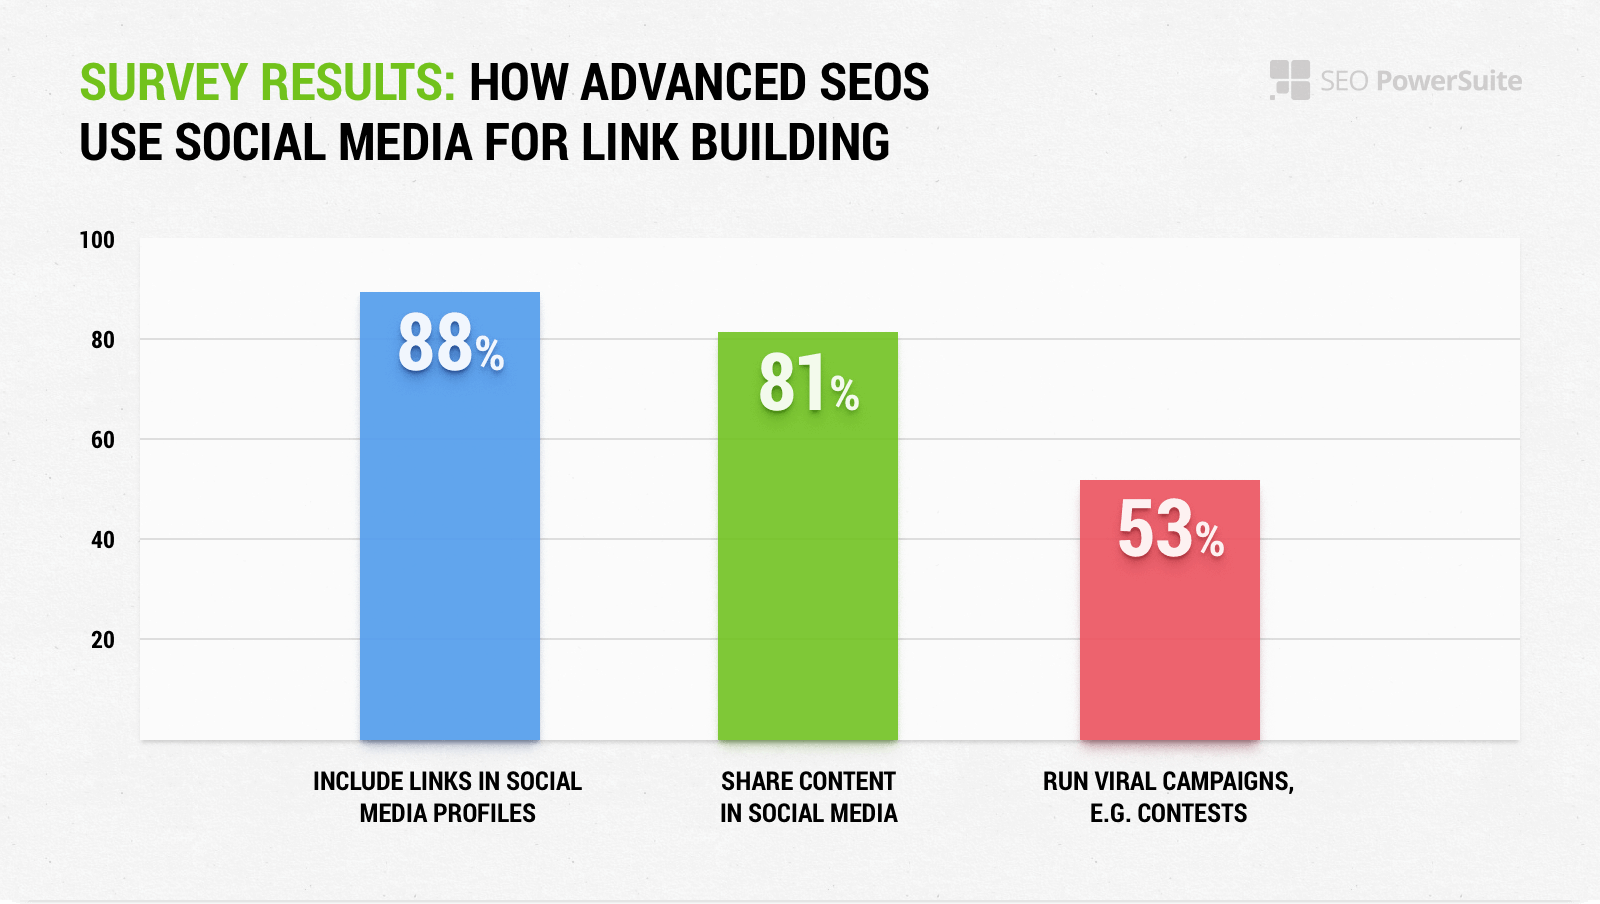 Social Media Marketing for Link Building: Top Tactics & Strategies